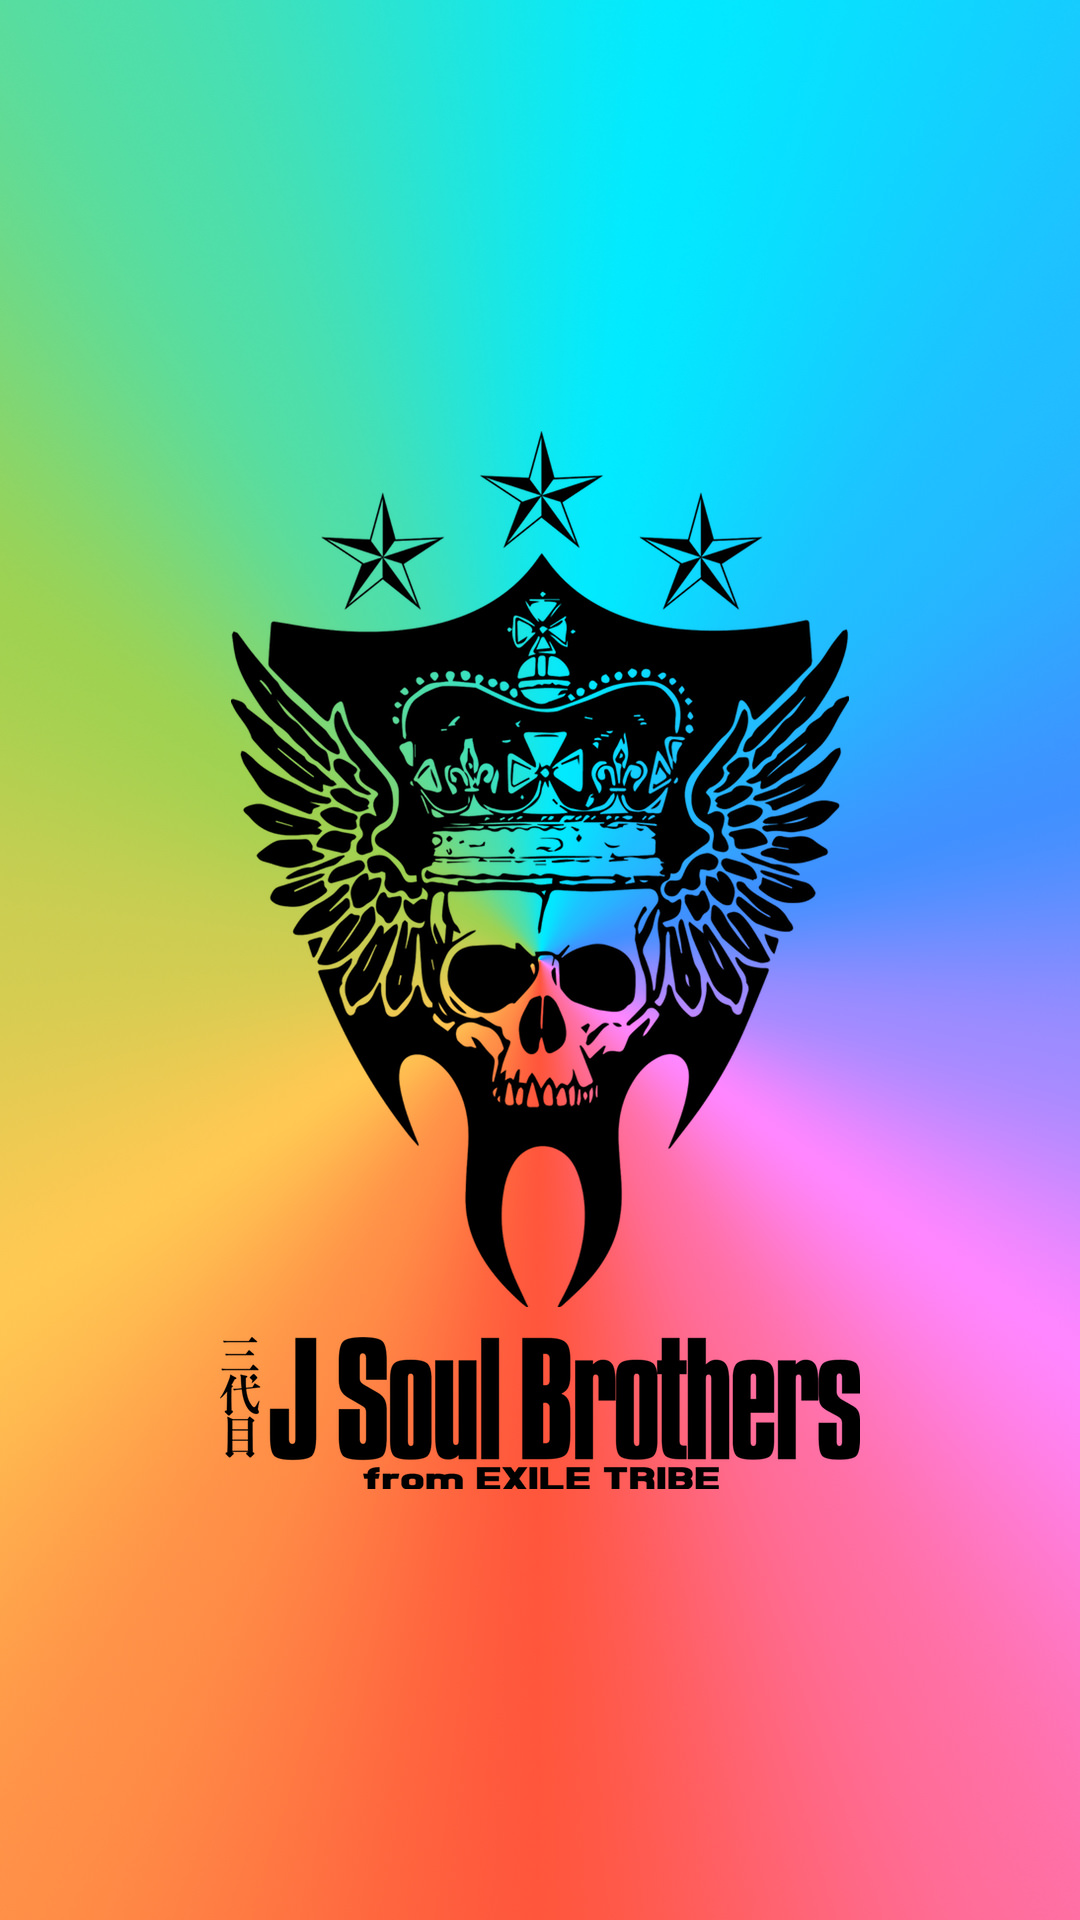 3jsb i11 - 三代目 J SOUL BROTHERSの高画質スマホ壁紙40枚 [iPhone&Androidに対応]